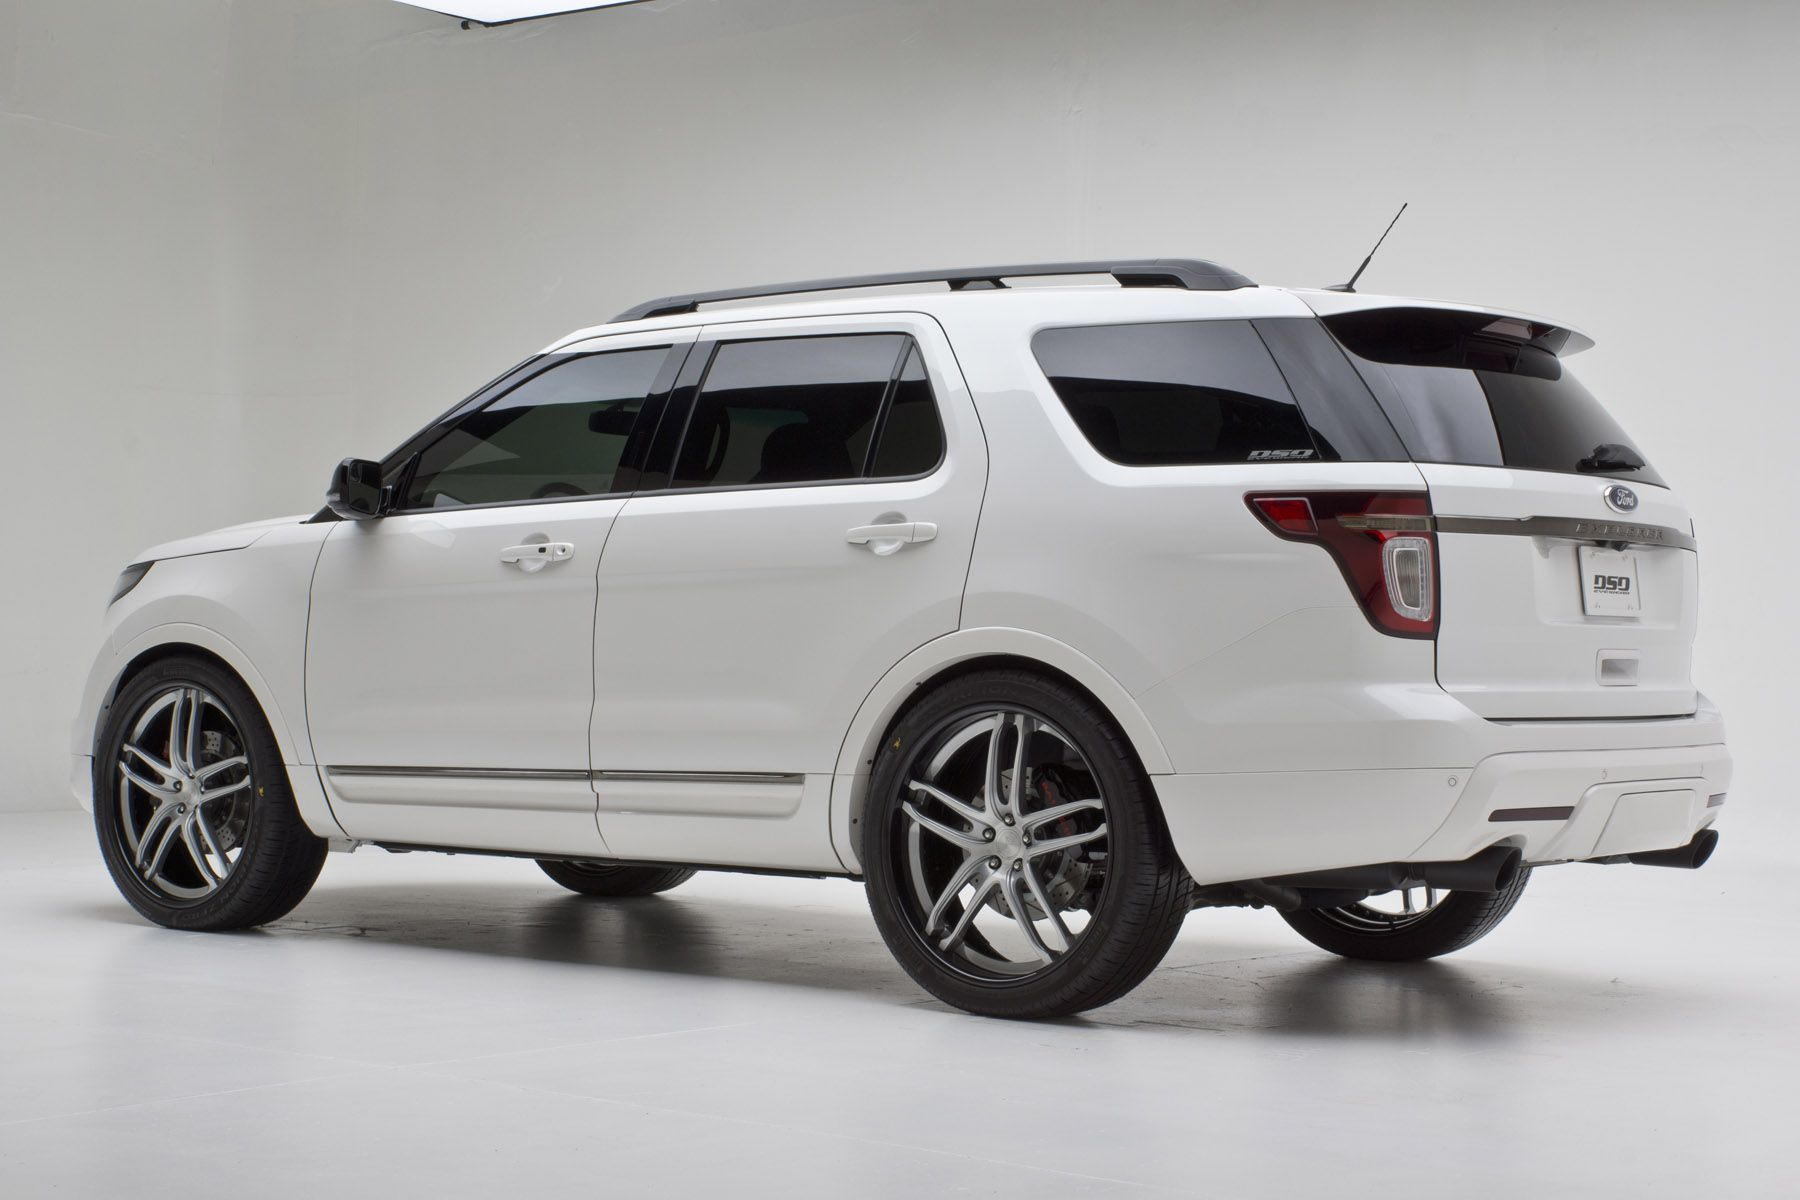 2012 Ford Explorer Limited By Dso Eyewear Exterior Basf Pearl Tri Coat White Finished In